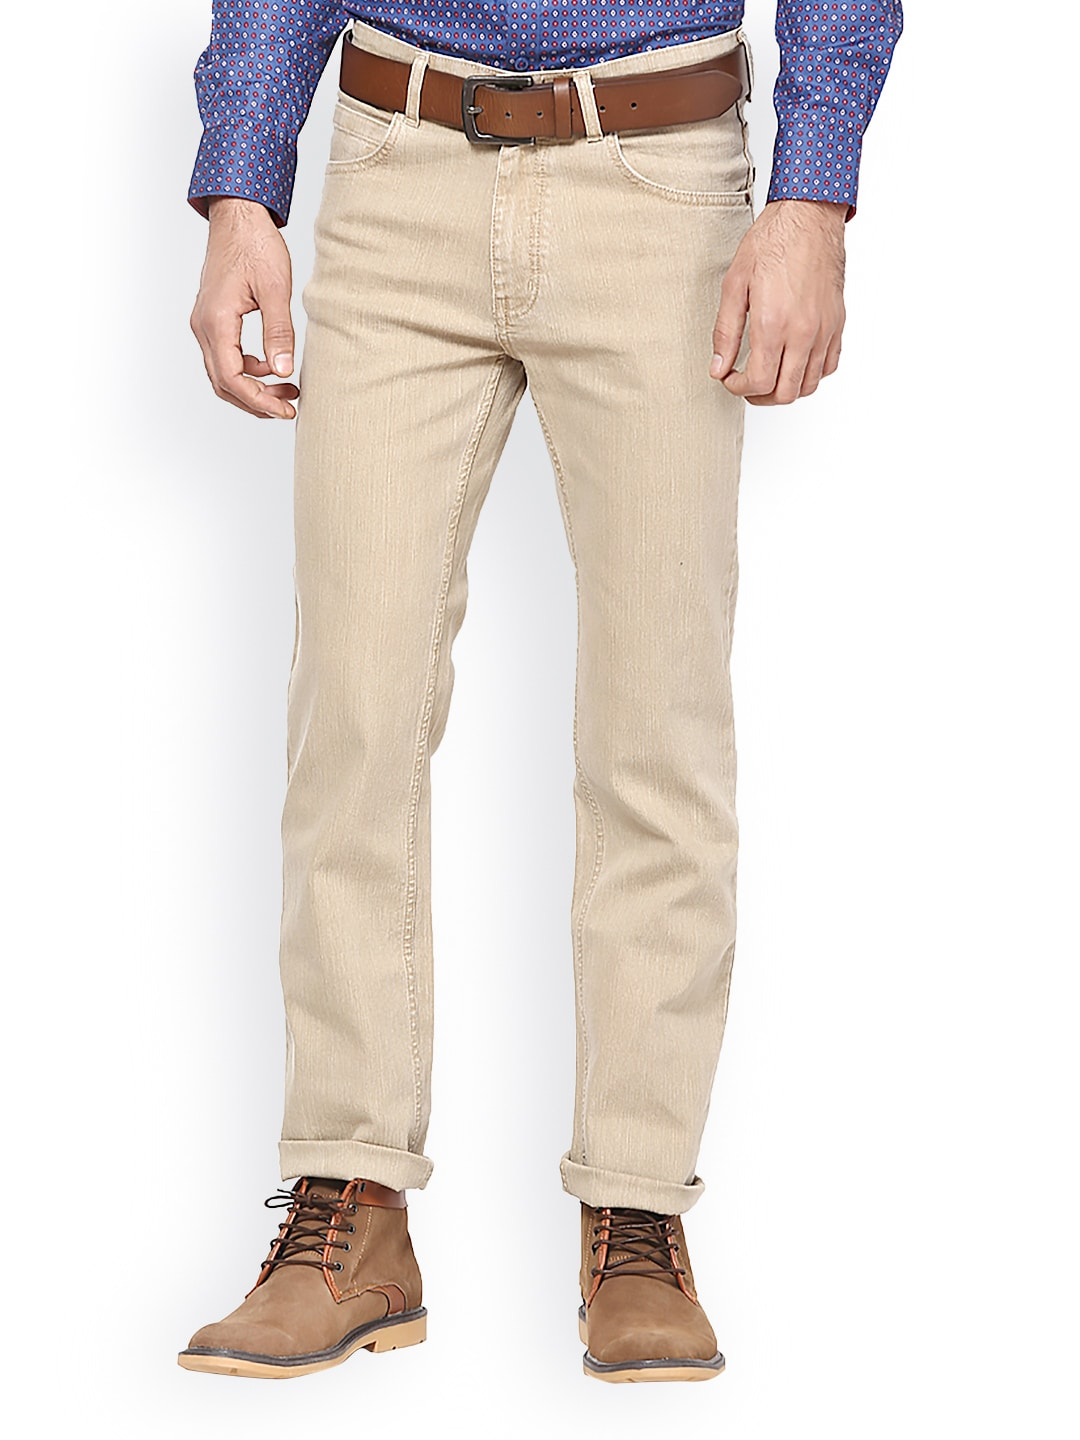 Mens Beige Jeans - Jeans Am